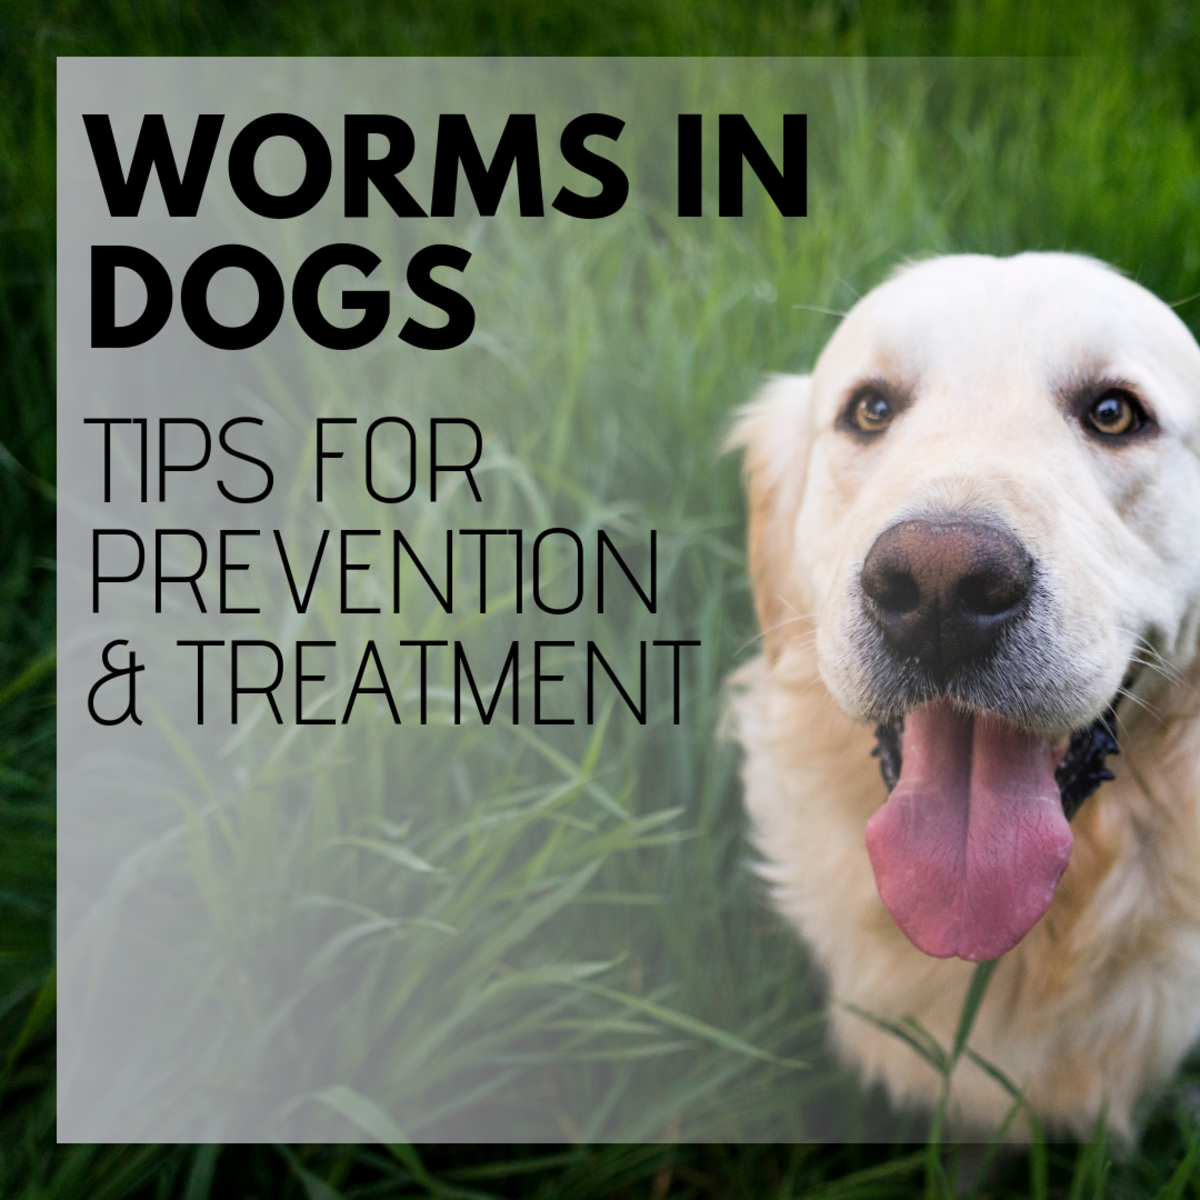 Parasites in Dogs